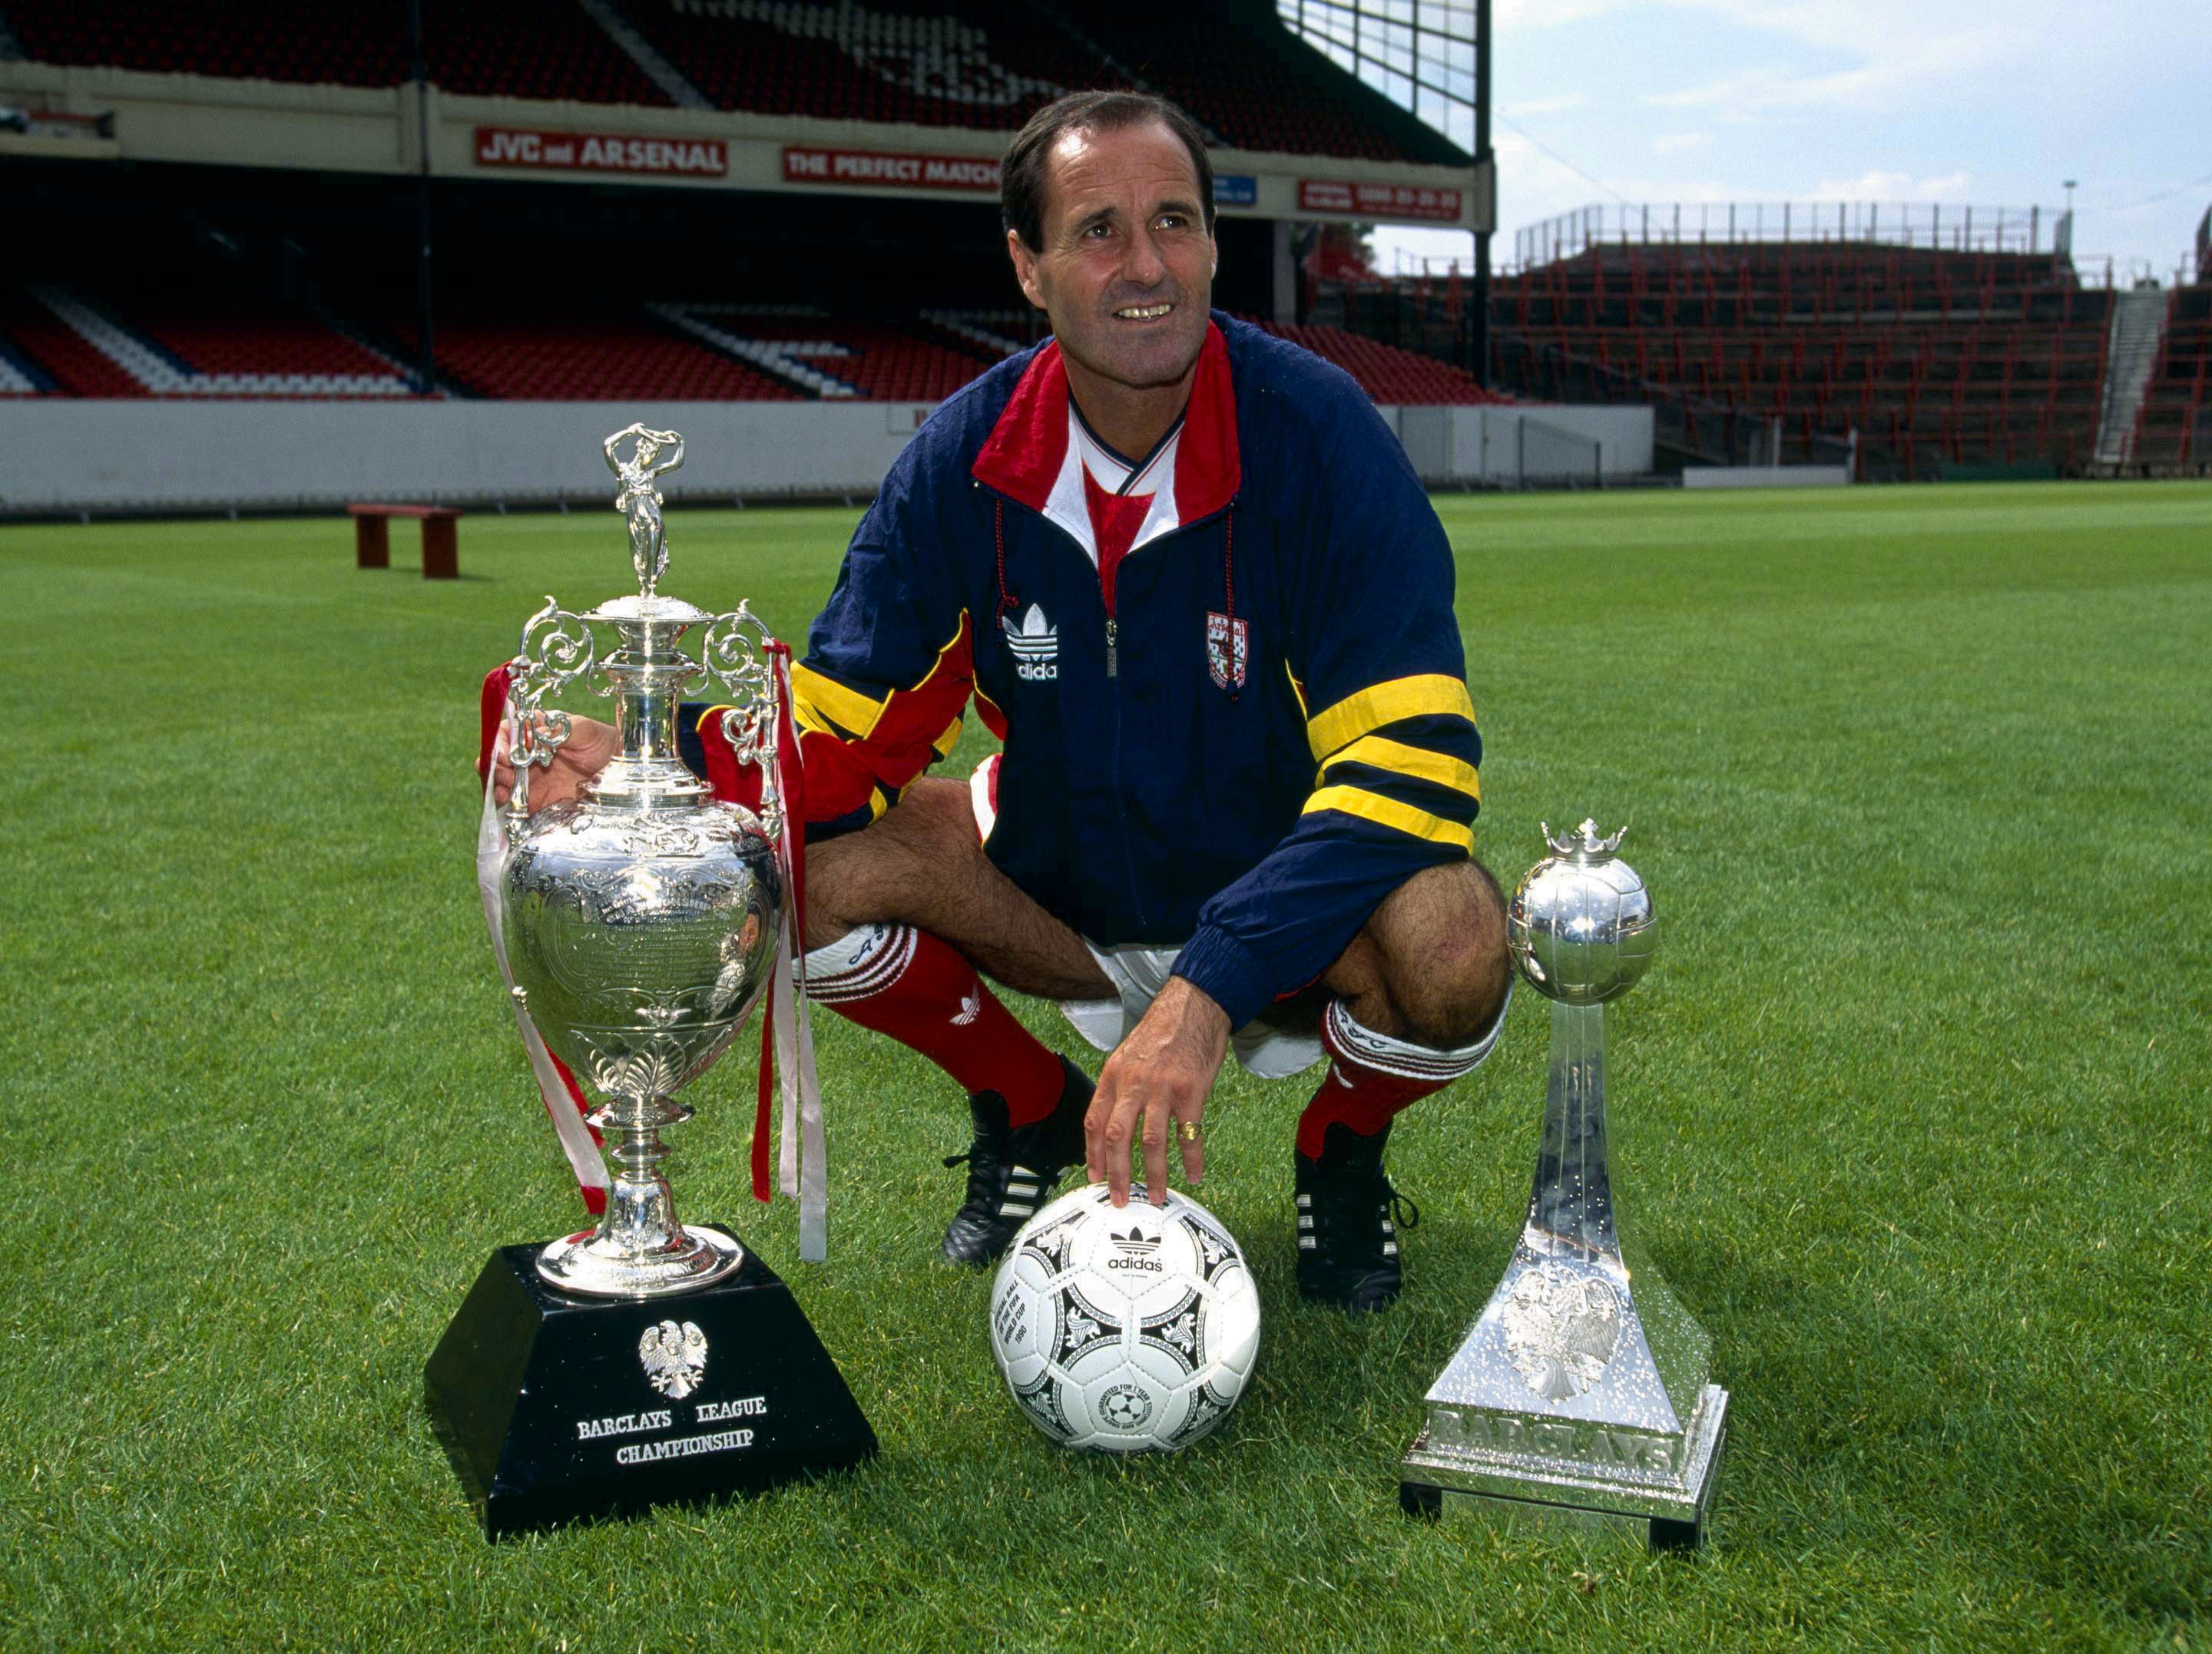 Arsenal: Why Mikel Arteta needs to follow George Graham's example and turn to youth to revive Gunners fortunes